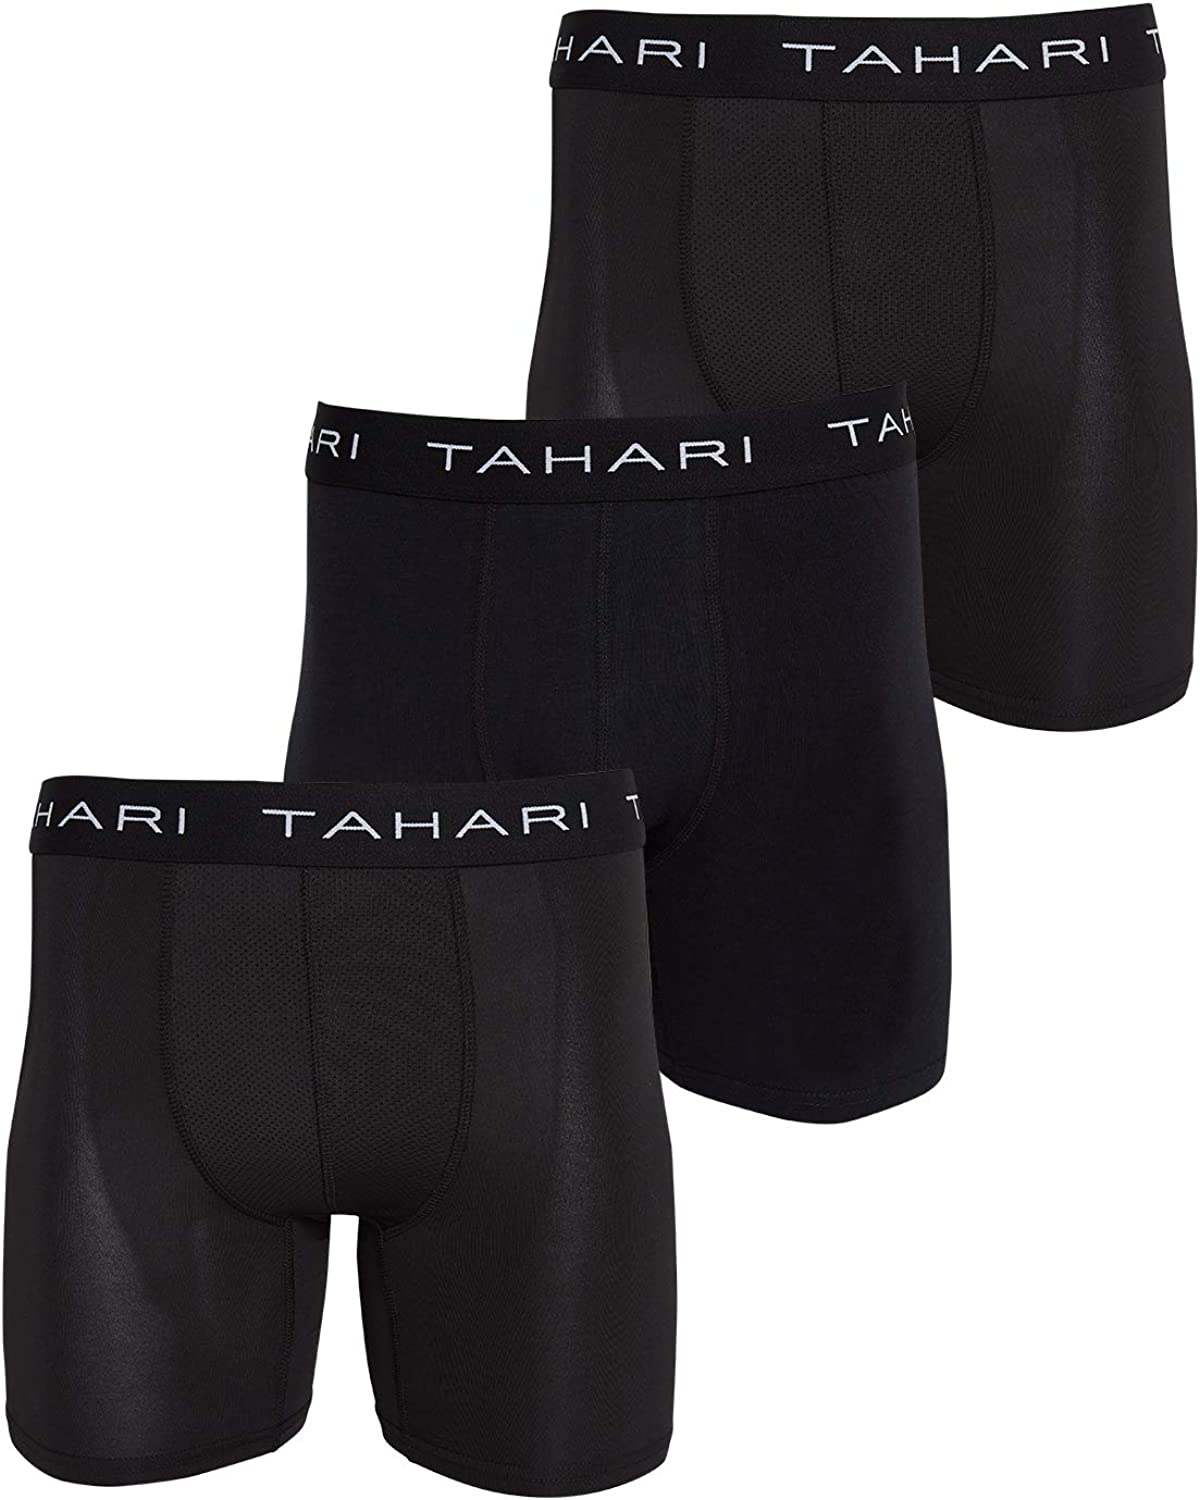 Tahari Mens Athletic Performance Boxer Brief Multi Pack Available in S,M,L,XL